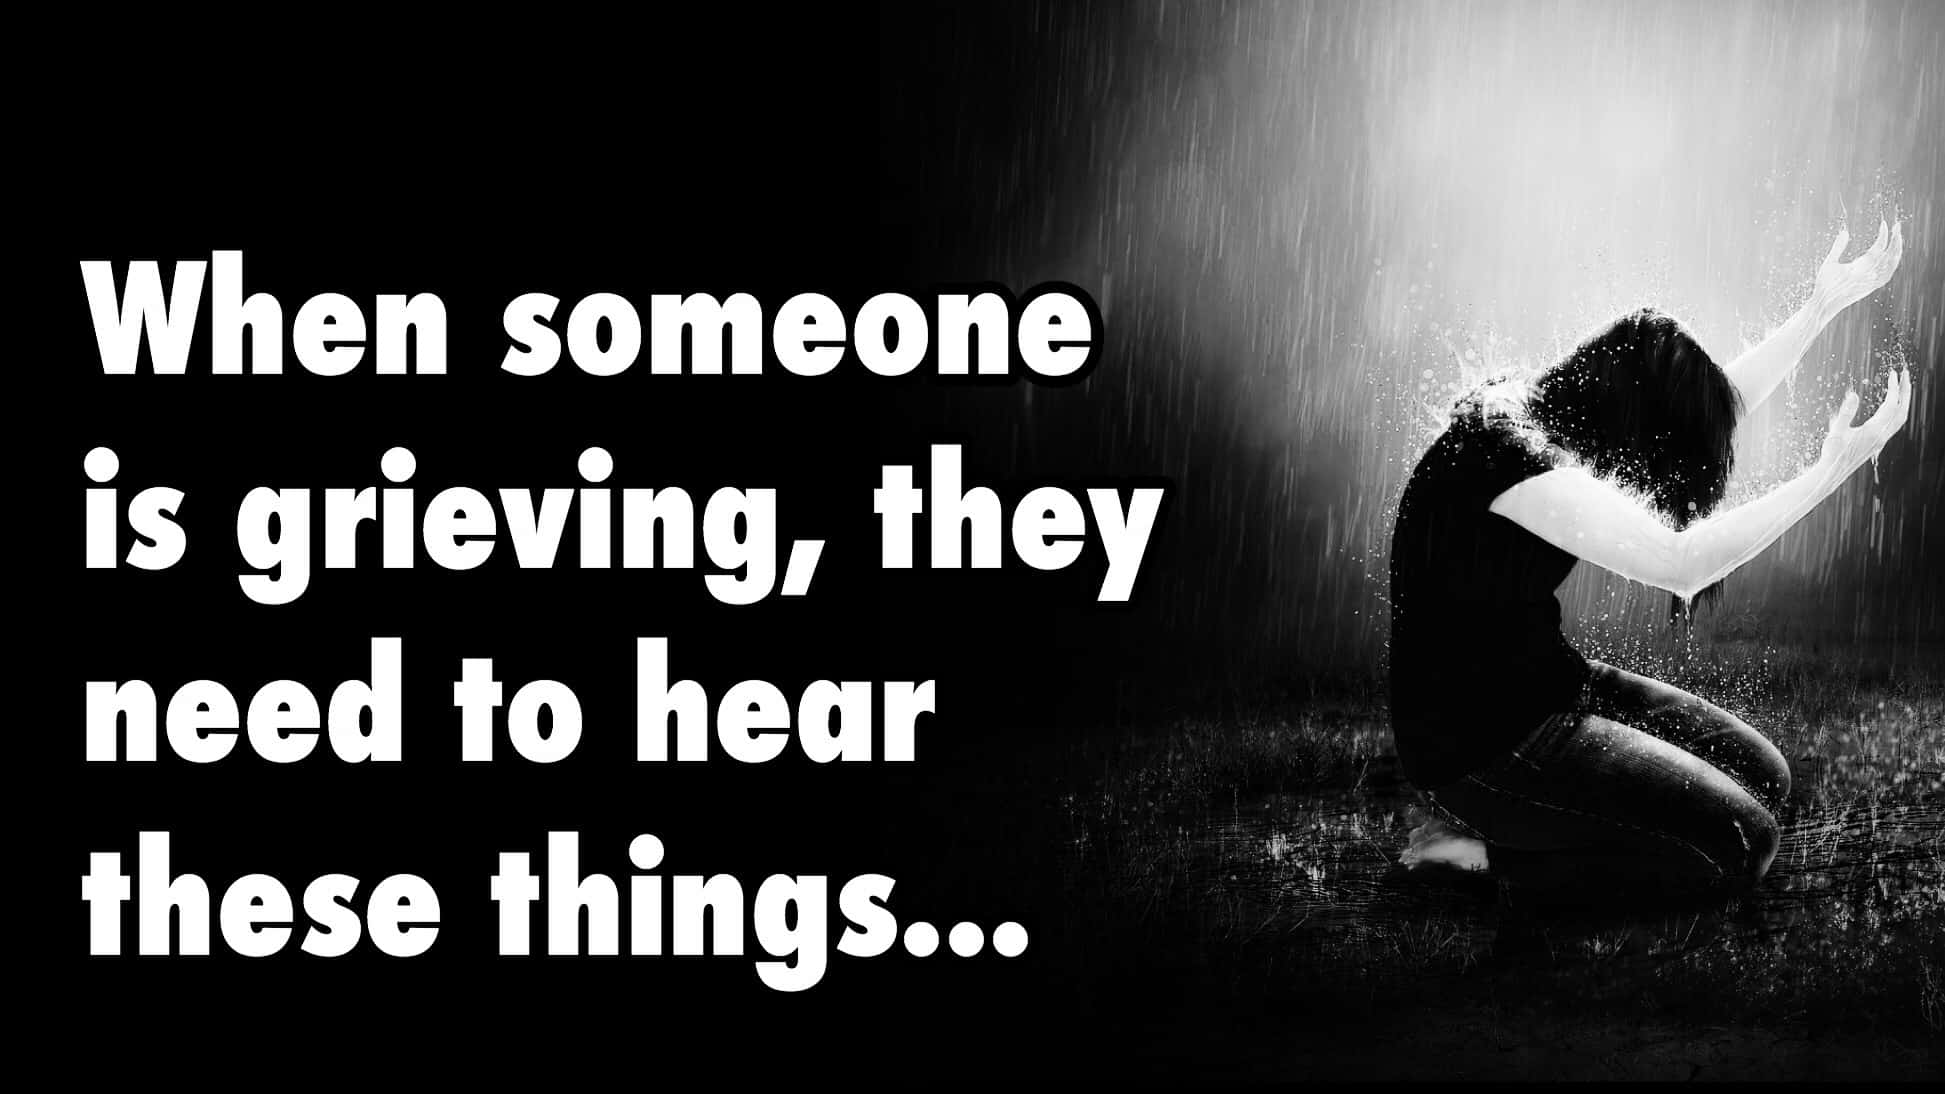 10 things a grieving person needs to hear